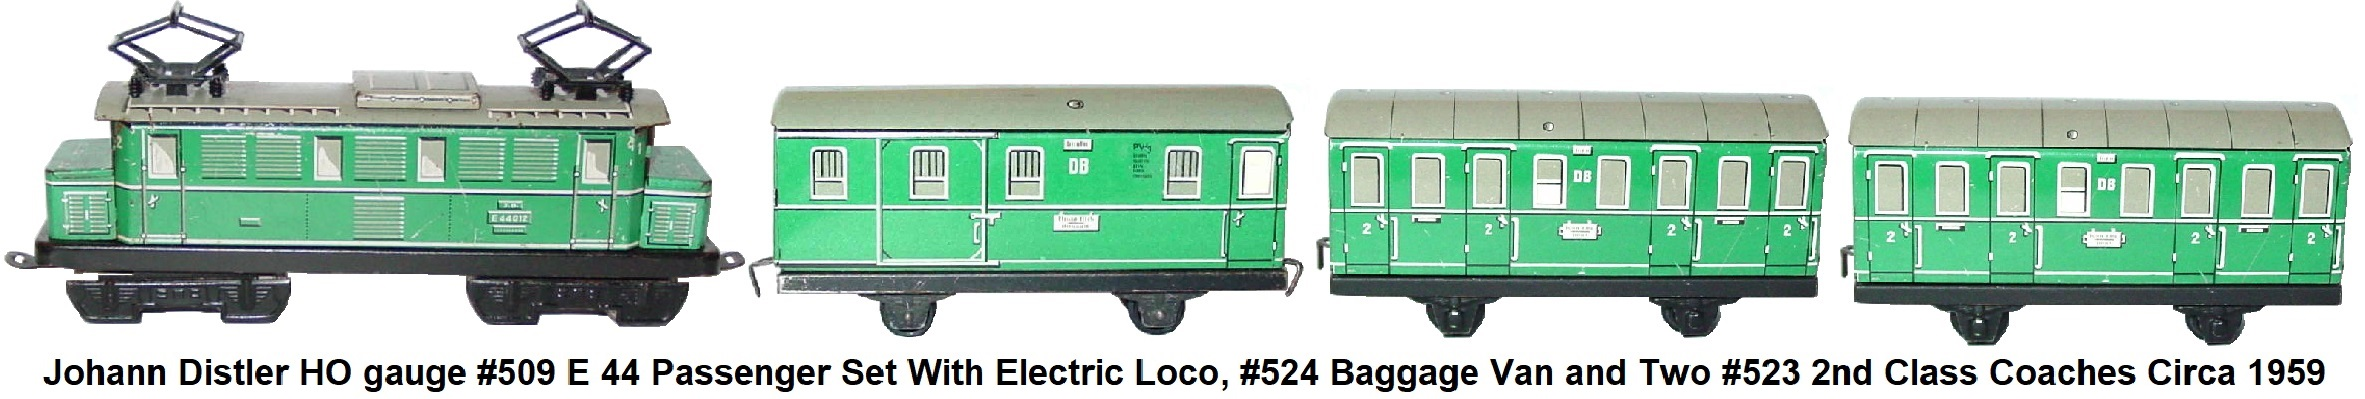 Johann Distler Nuremberg, HO gauge tinplate lithographed #509 Set with E 44 electric loco, #524 baggage van, 2 #523 2nd class passenger coaches circa 1959